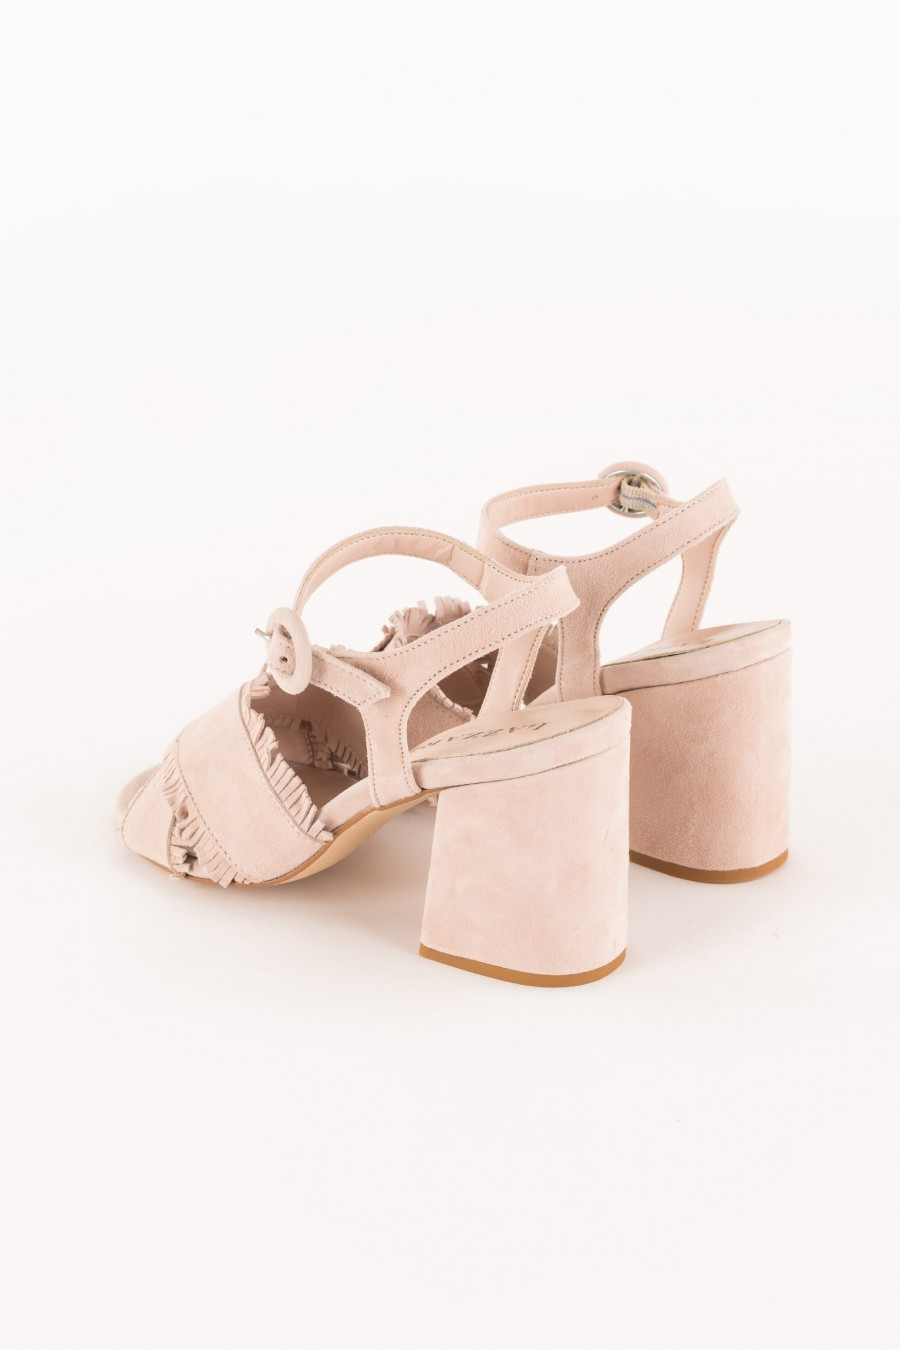 powder sandal with cross straps